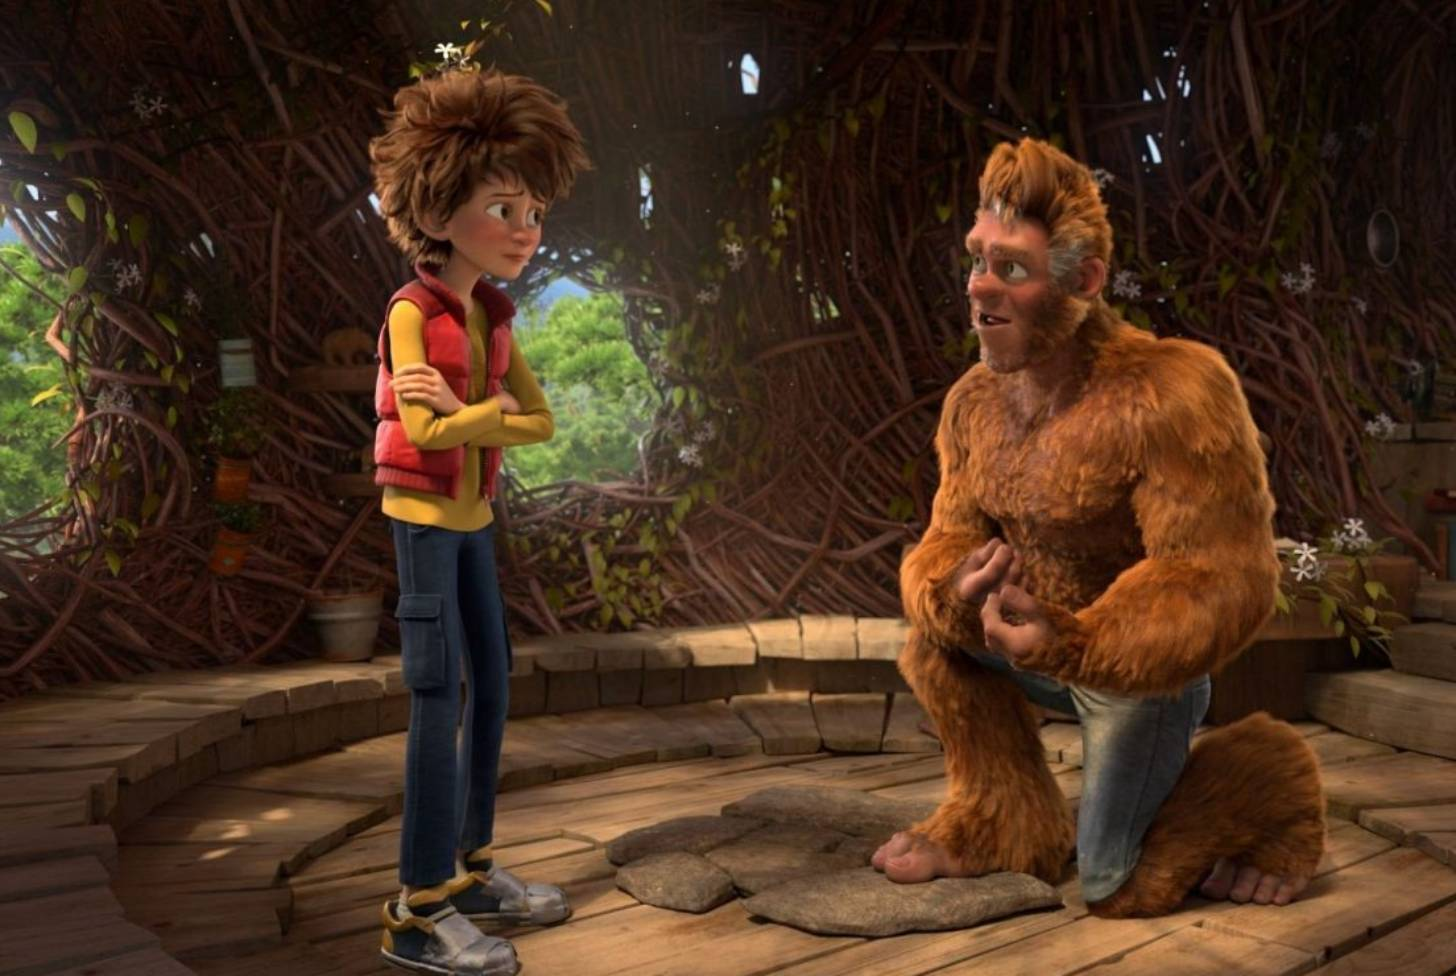 Adam (voiced by Pappy Faulkner) and his father (voiced by Chris Parson) in The Son of Bigfoot (2017)